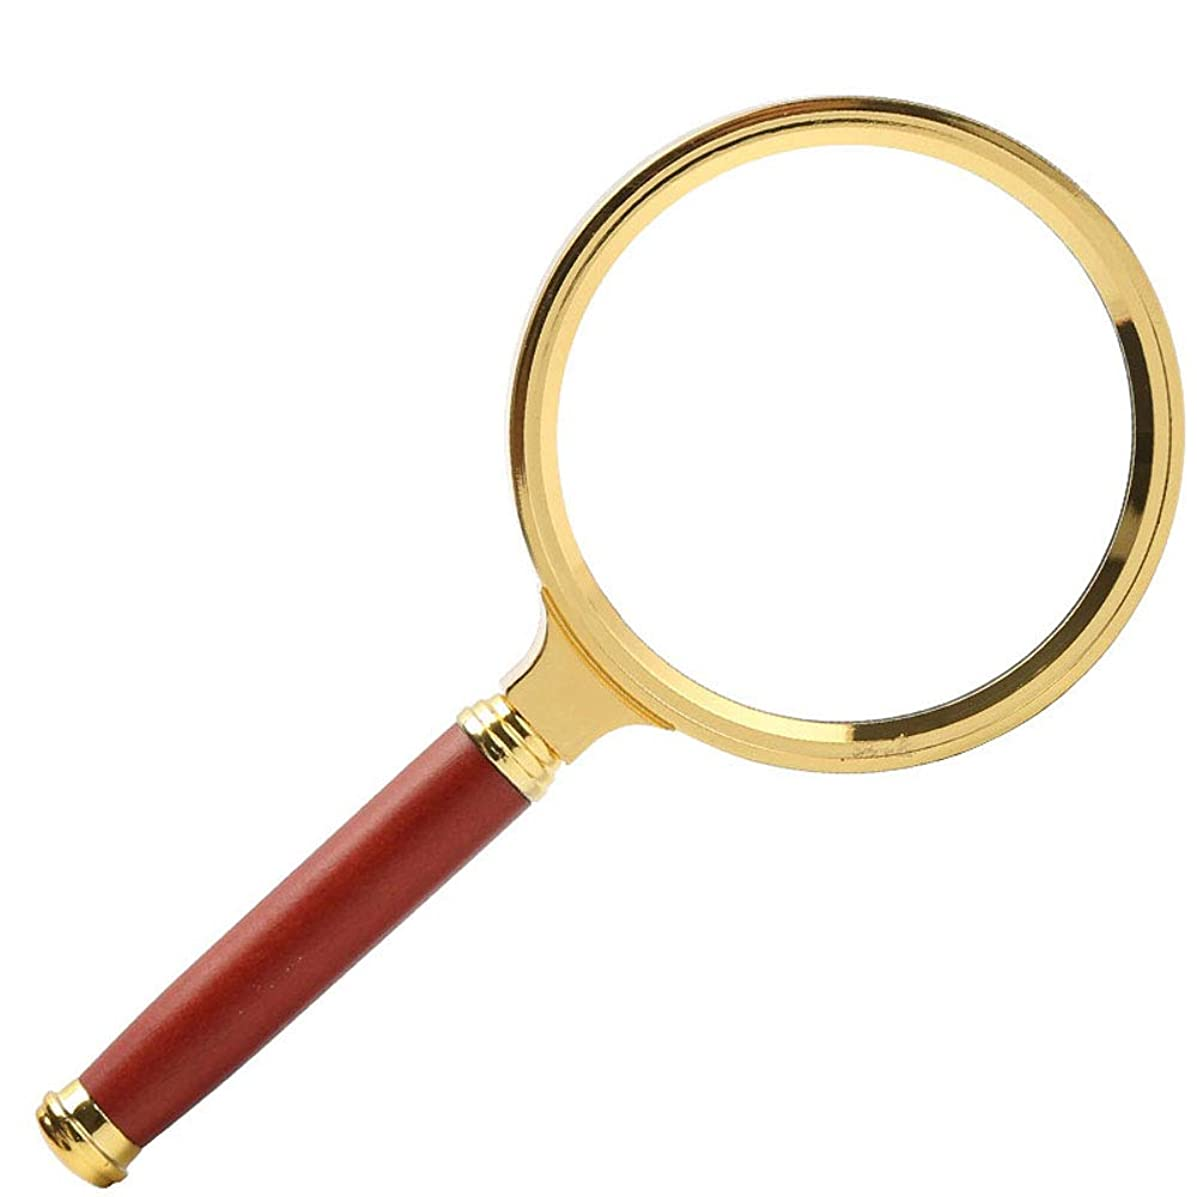 Handheld Wooden Handle Magnifying Glass, Old Man Reading Picture Reading, HD Recognition, 5 Times Metal Frame Large Lens